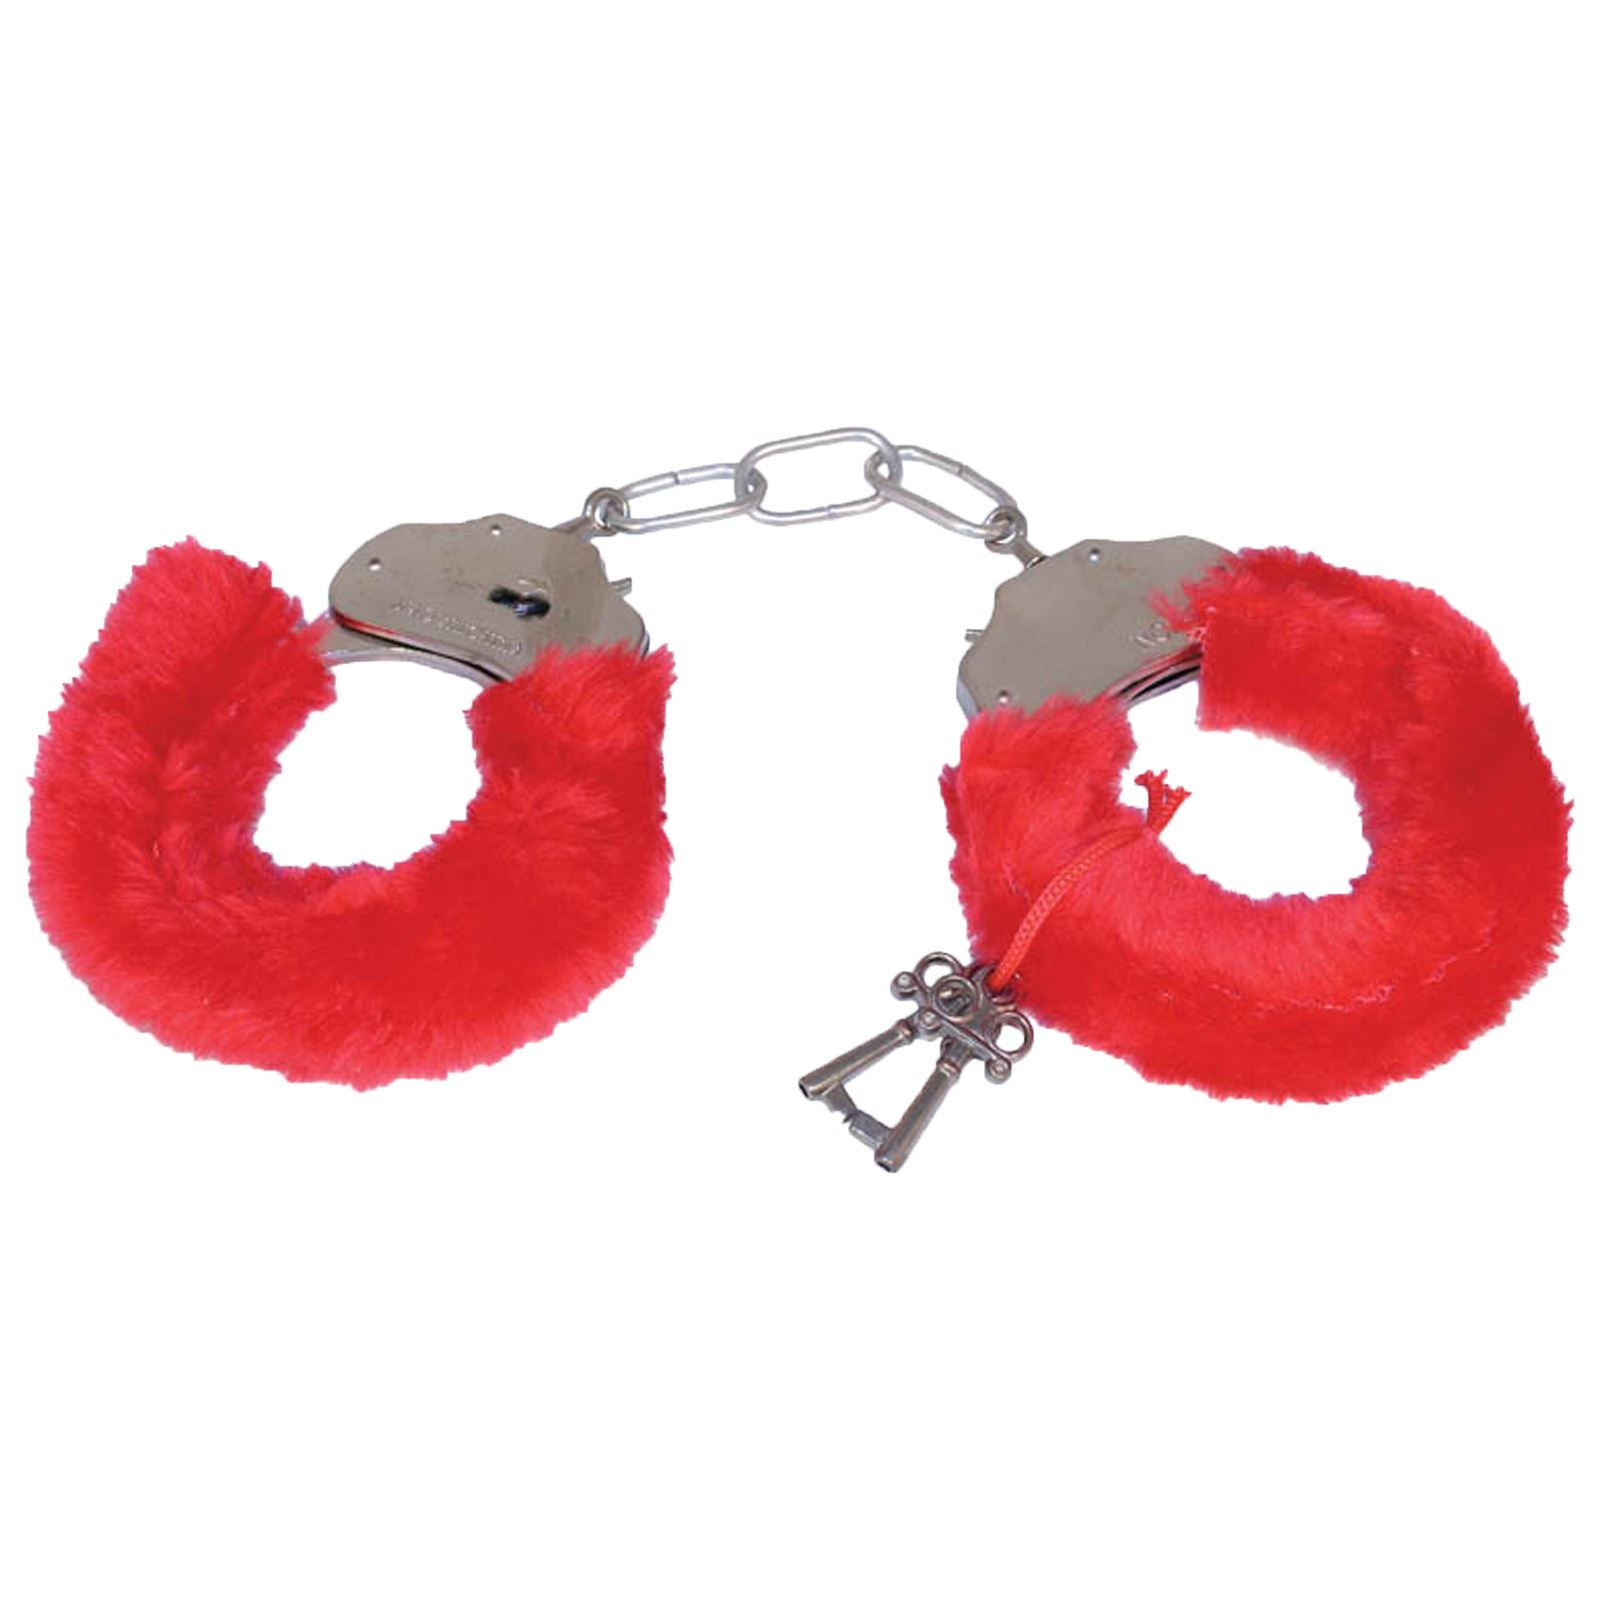 FURRY-FLUFFY-PINK-BLACK-RED-METAL-HANDCUFFS-FANCY-DRESS-HEN-NIGHT-STAG-PLAY-TOYS thumbnail 20